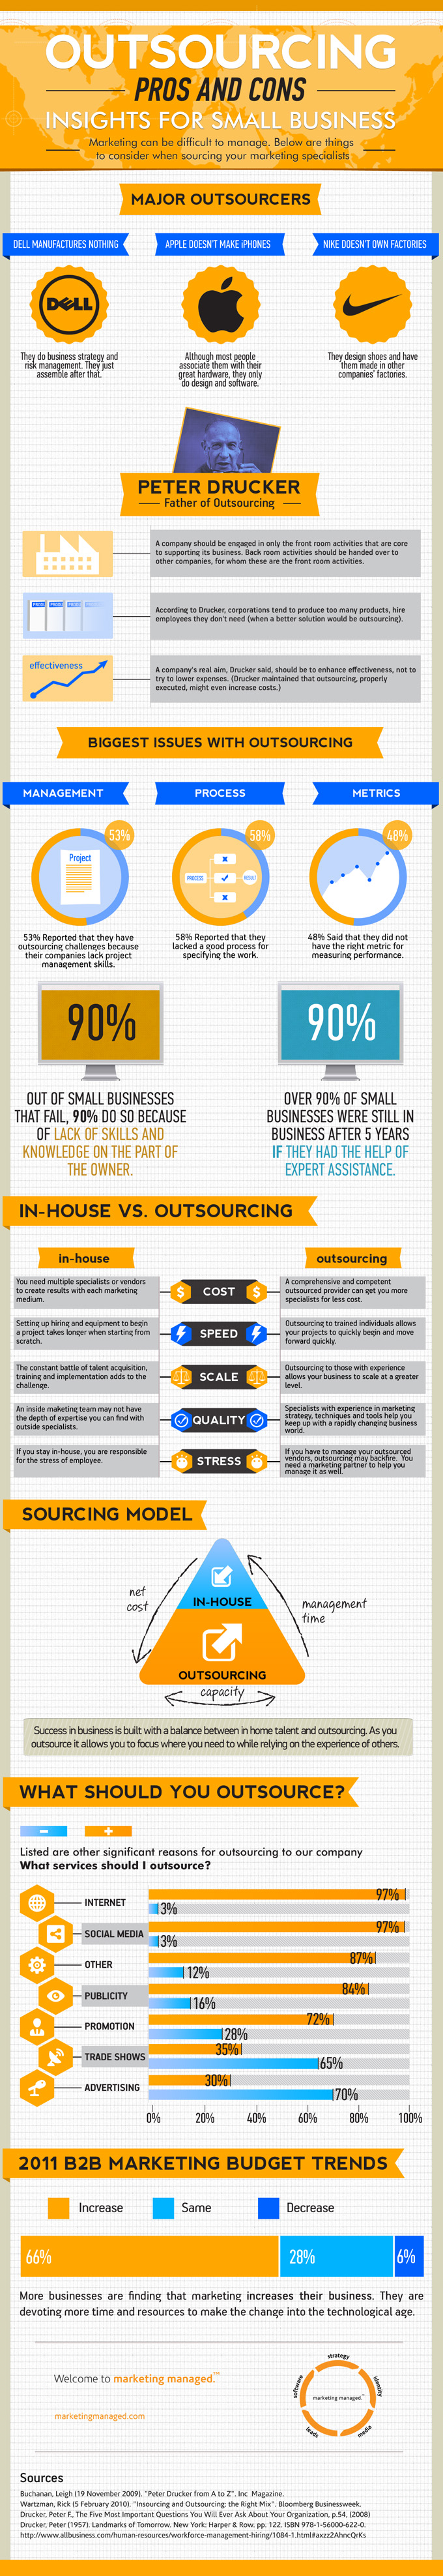 8 Pros and Cons of Outsourcing your Workforce